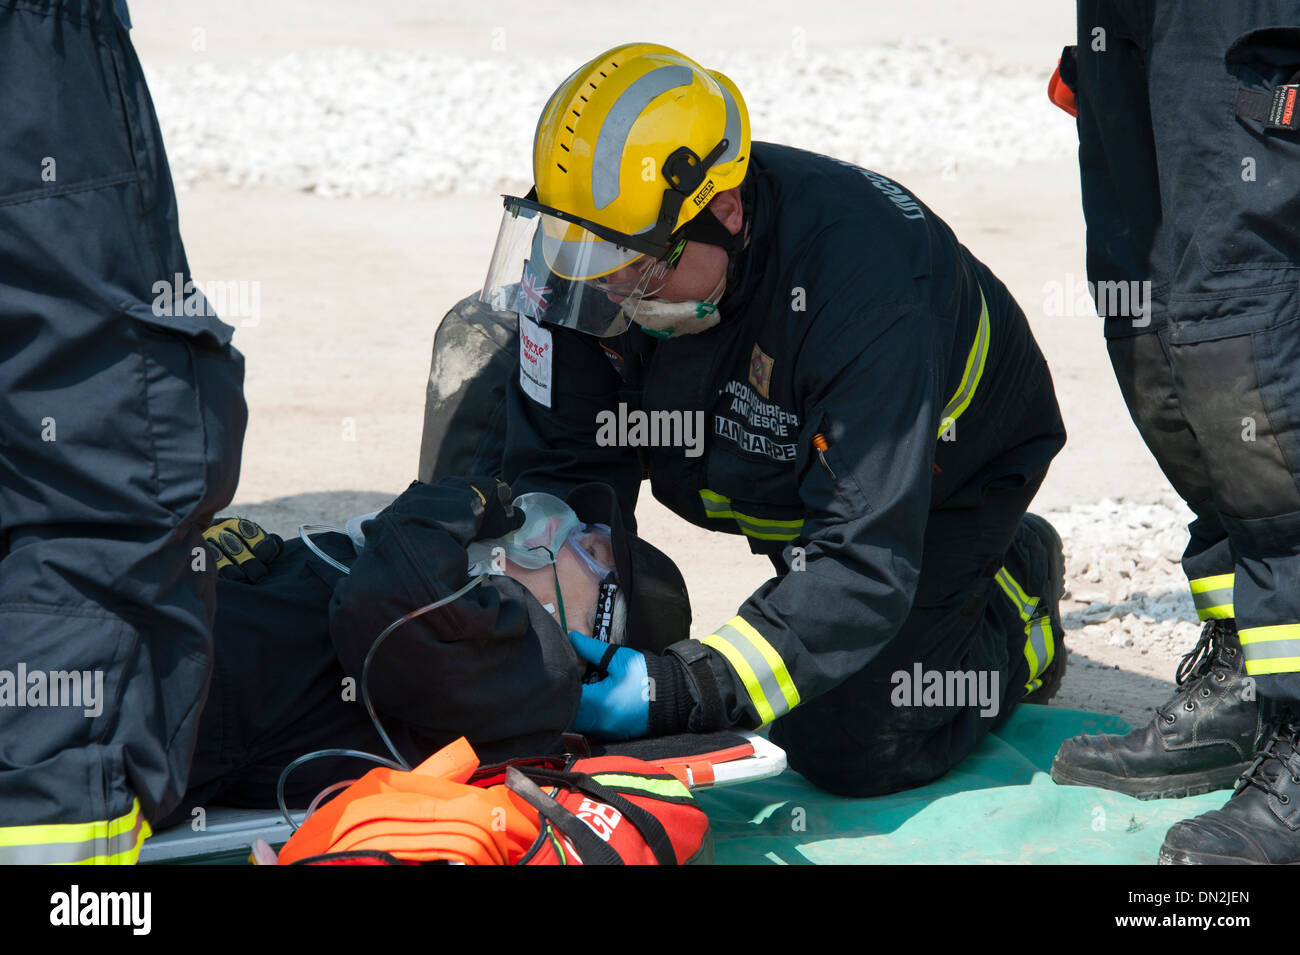 Crash C Stock Photos & Crash C Stock Images - Alamy